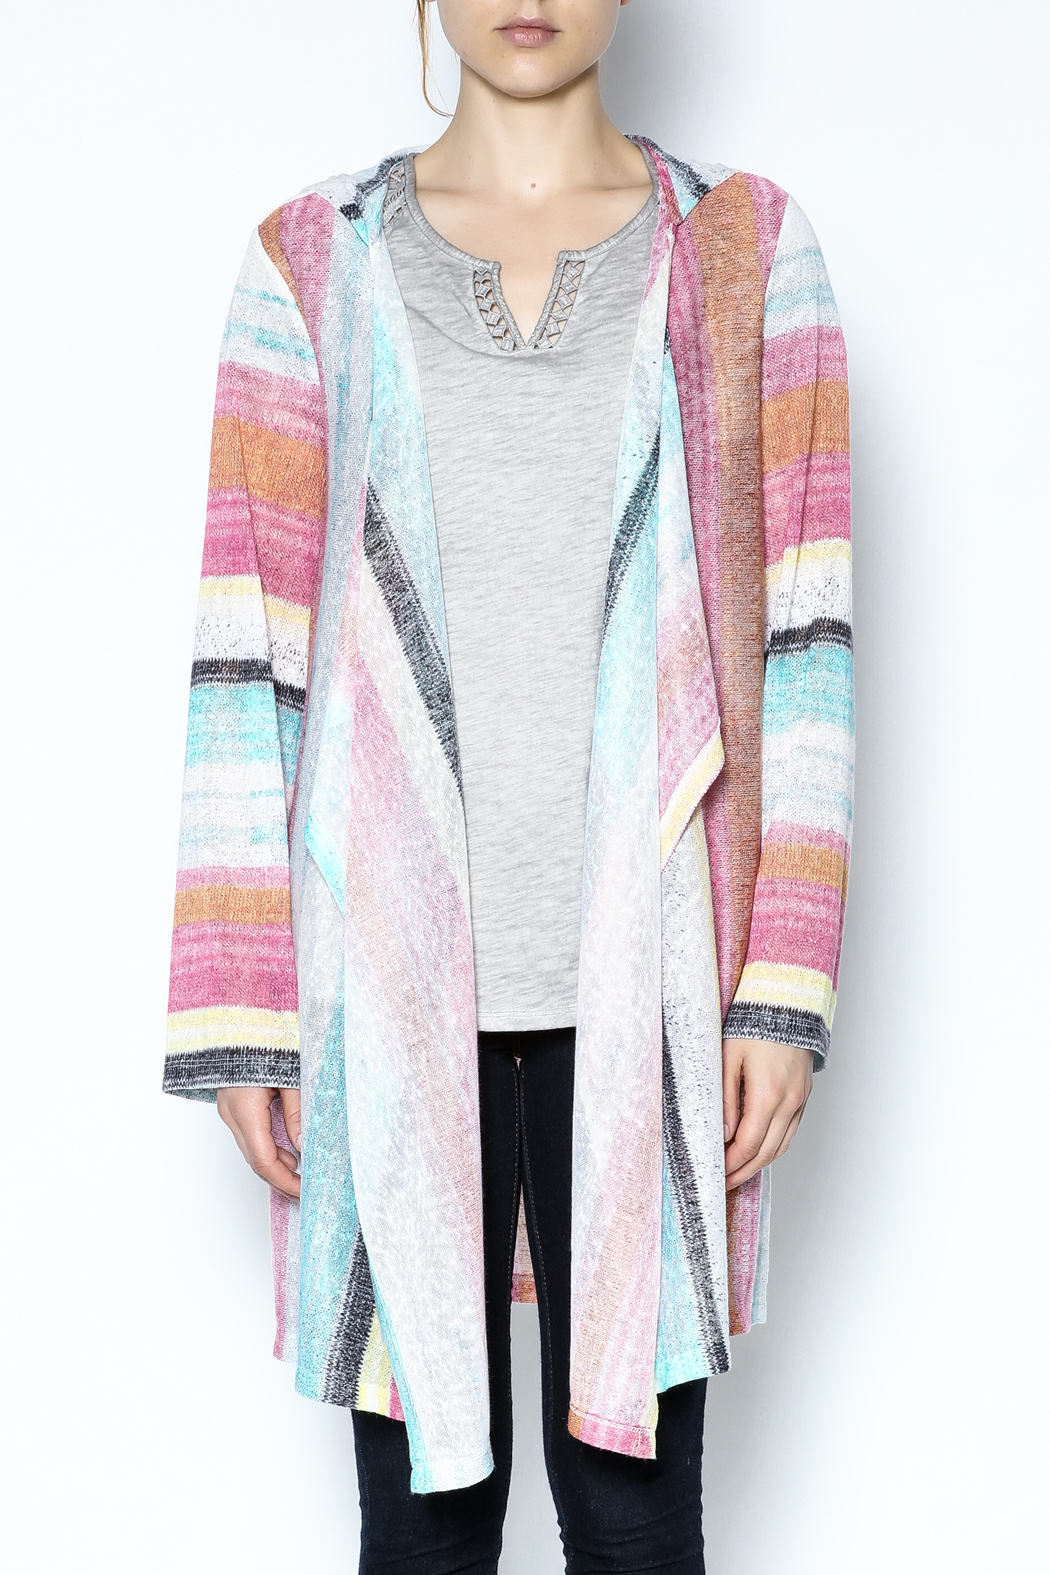 Tribal Jeans Hooded Cardigan from Nebraska by Lana a Boutique ...